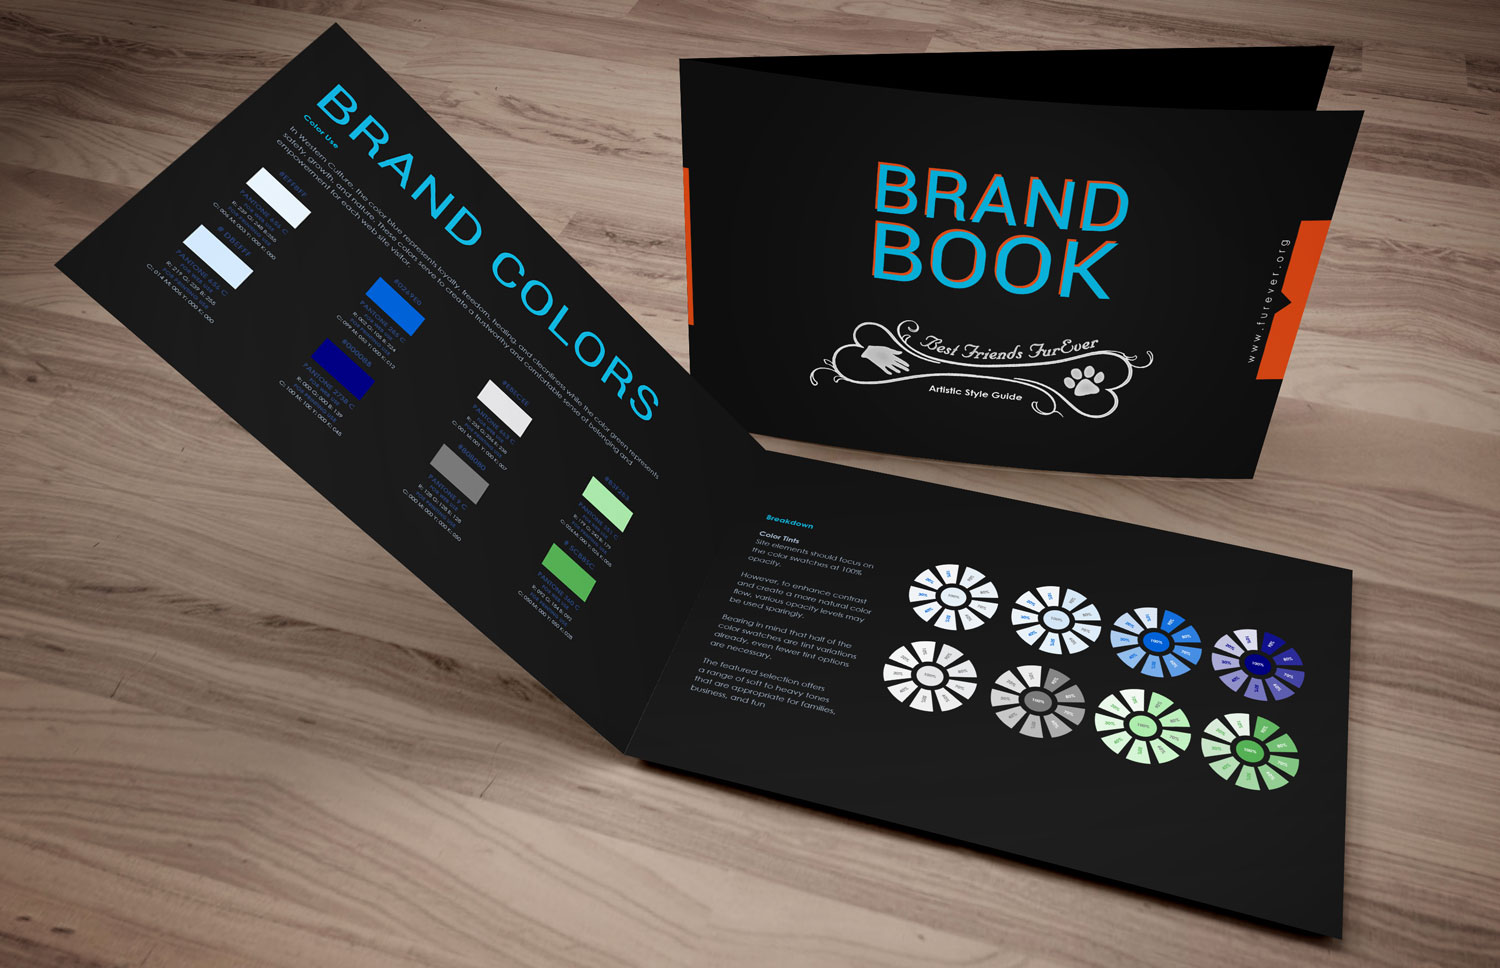 Brand Colors for Best Friends FurEver, Brand Book